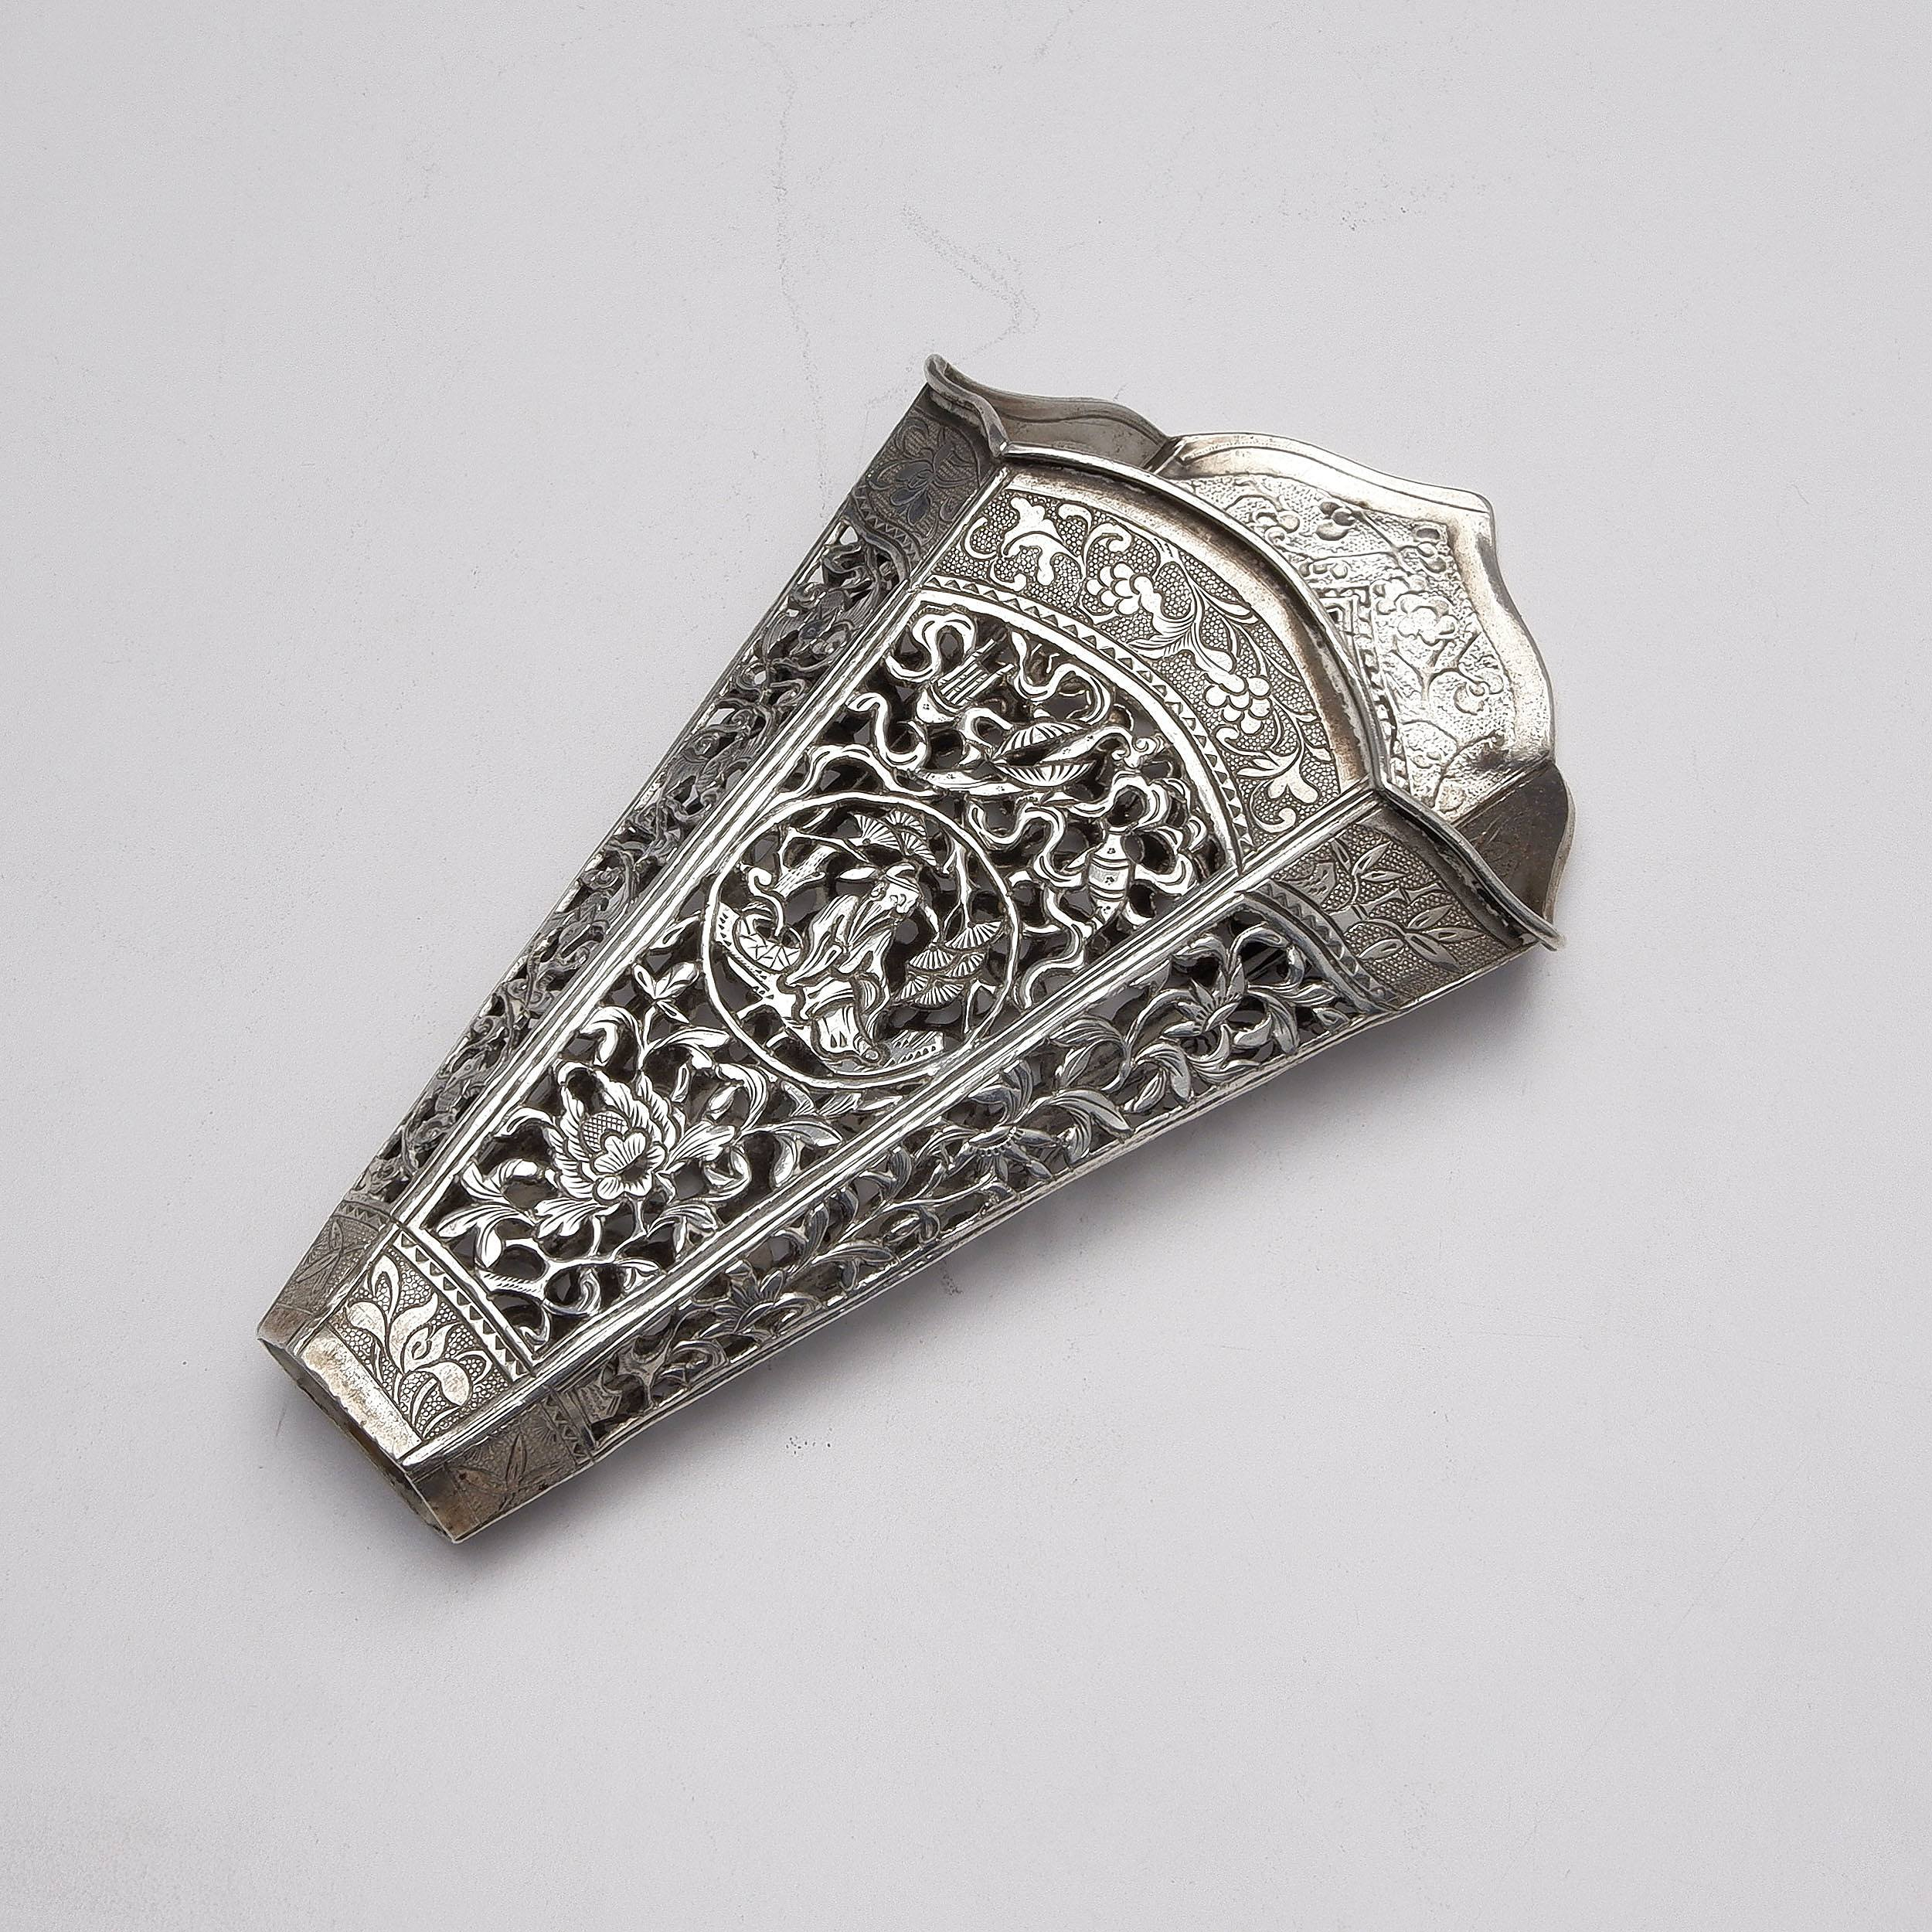 'Chinese Silversmithed Pierced and Engraved Silver Vase, 36g'